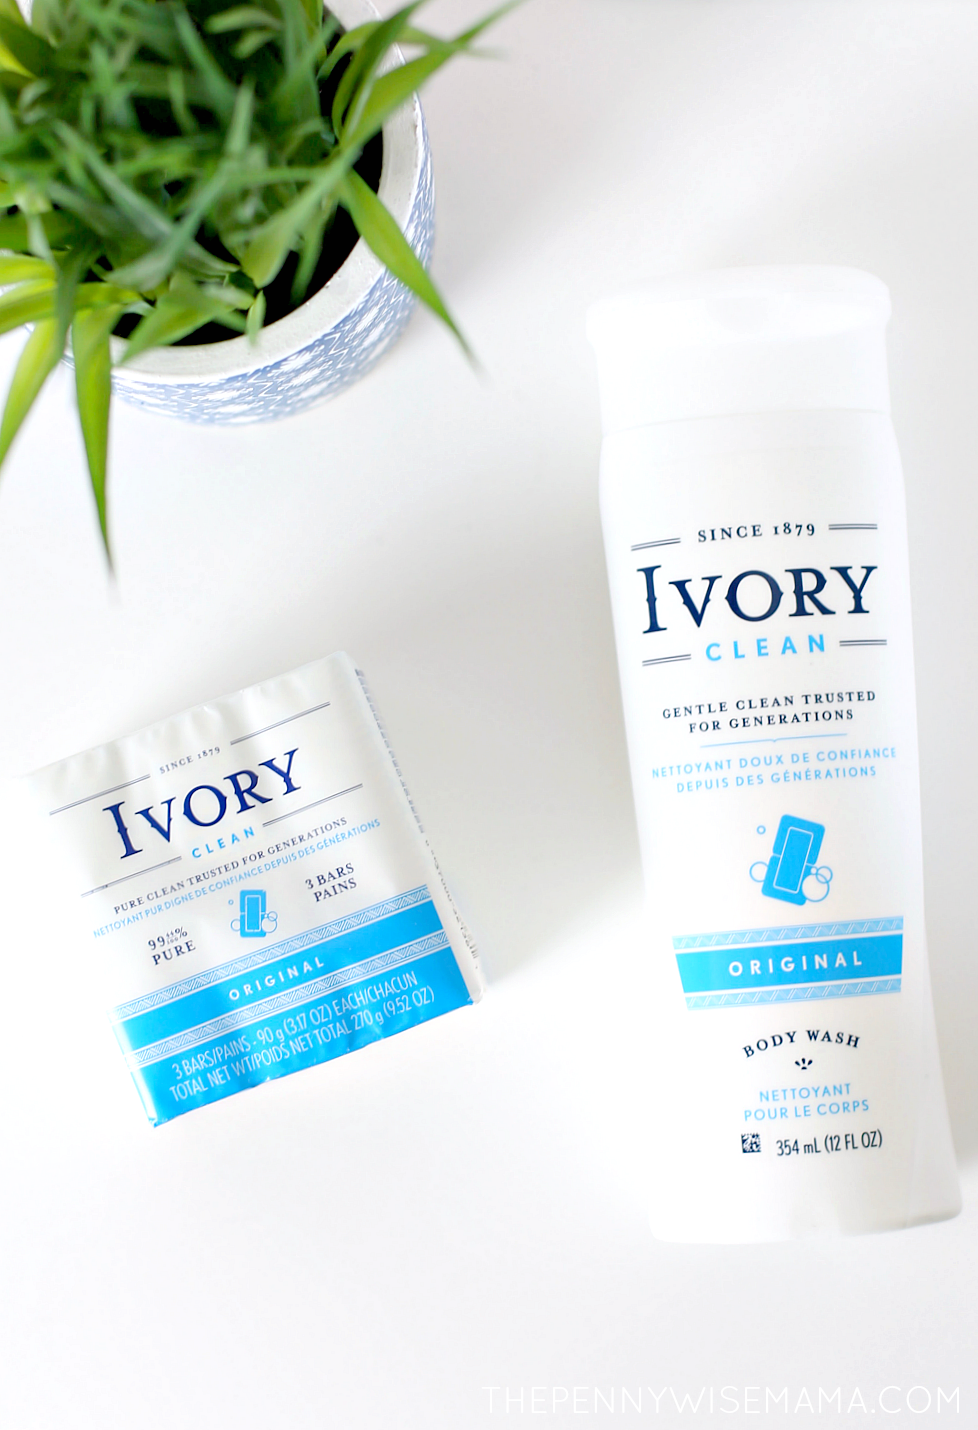 New Ivory Products - Original Bar Soap & Classic Body Wash